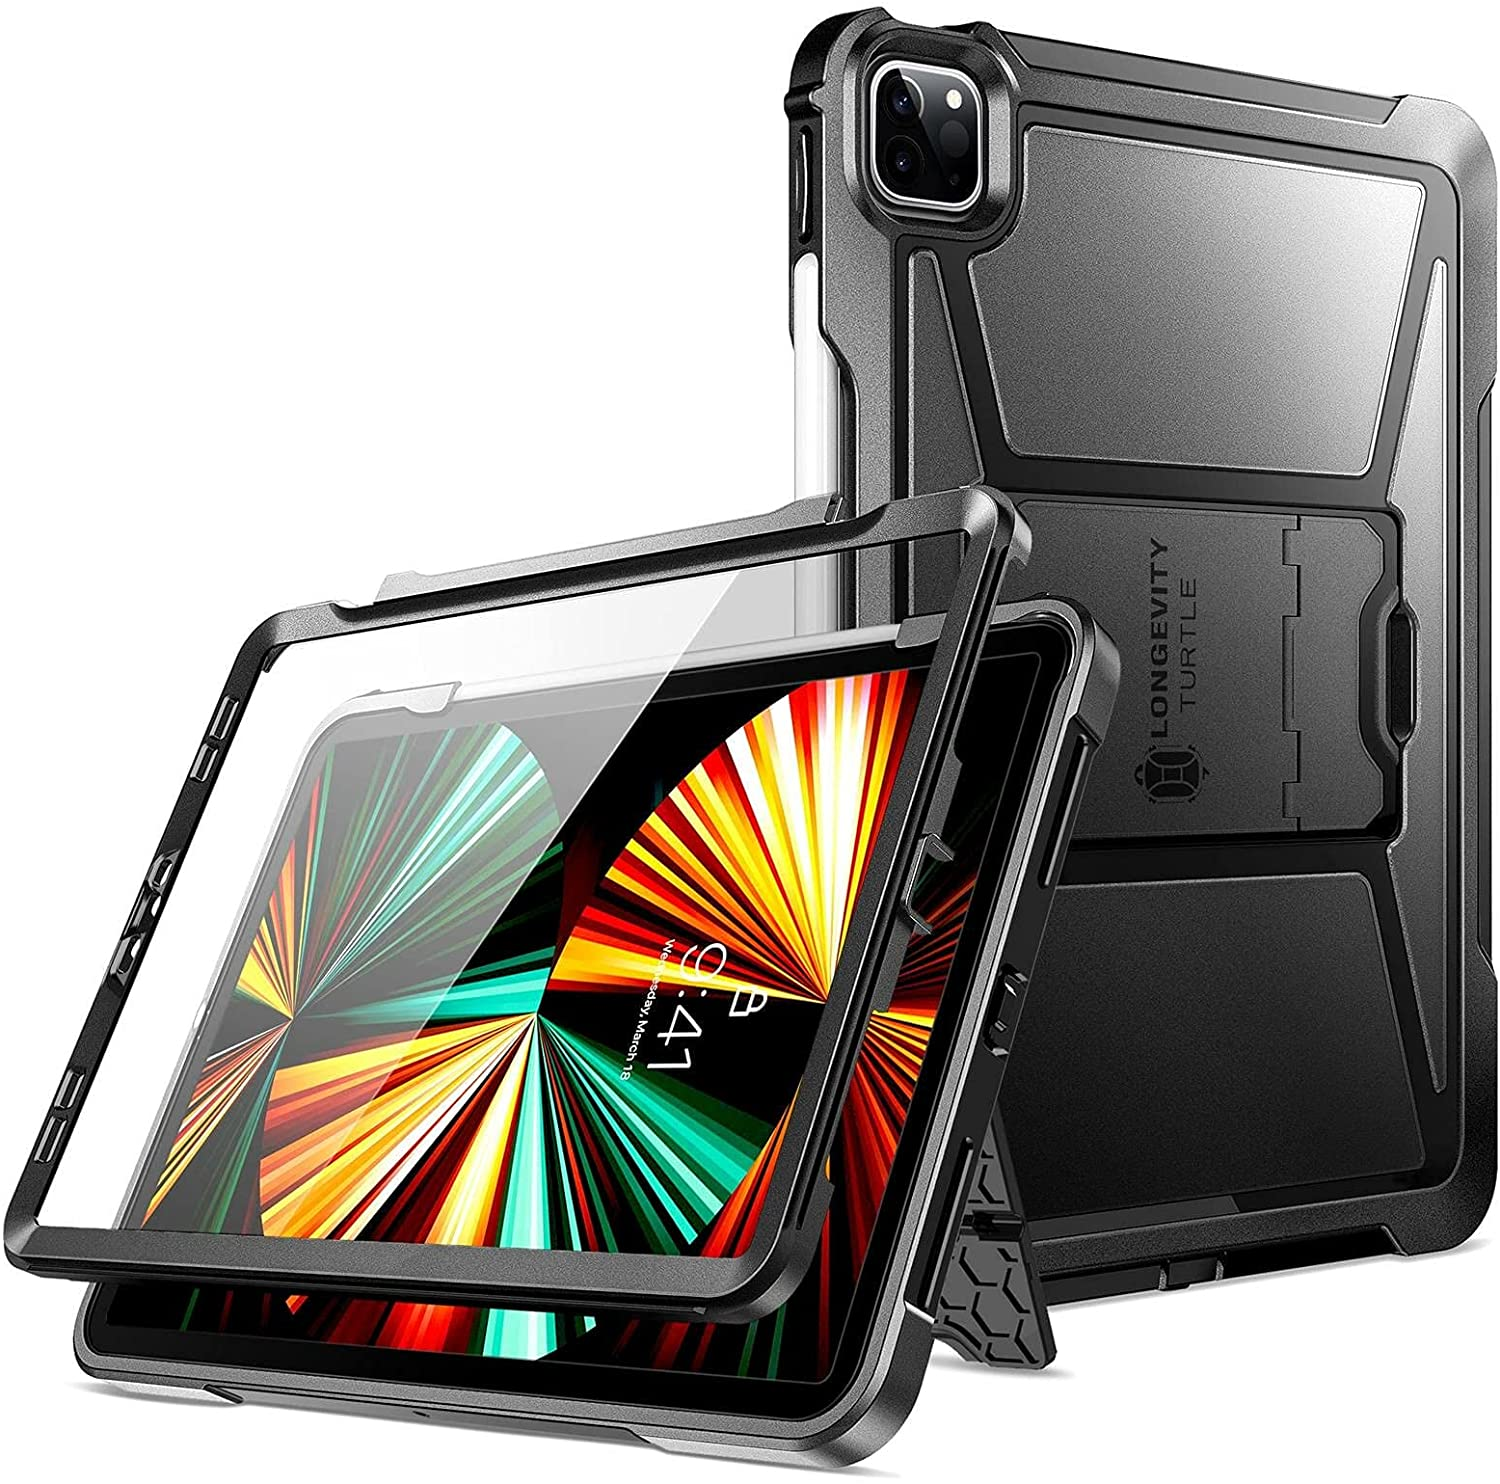 Ztotop Case for iPad Pro 12.9 Case 2021 Released, Rugged Cover with Built-in [Pencil Holder + Screen Protector] Designed for iPad Pro 12.9 Inch 5th Gen, Black